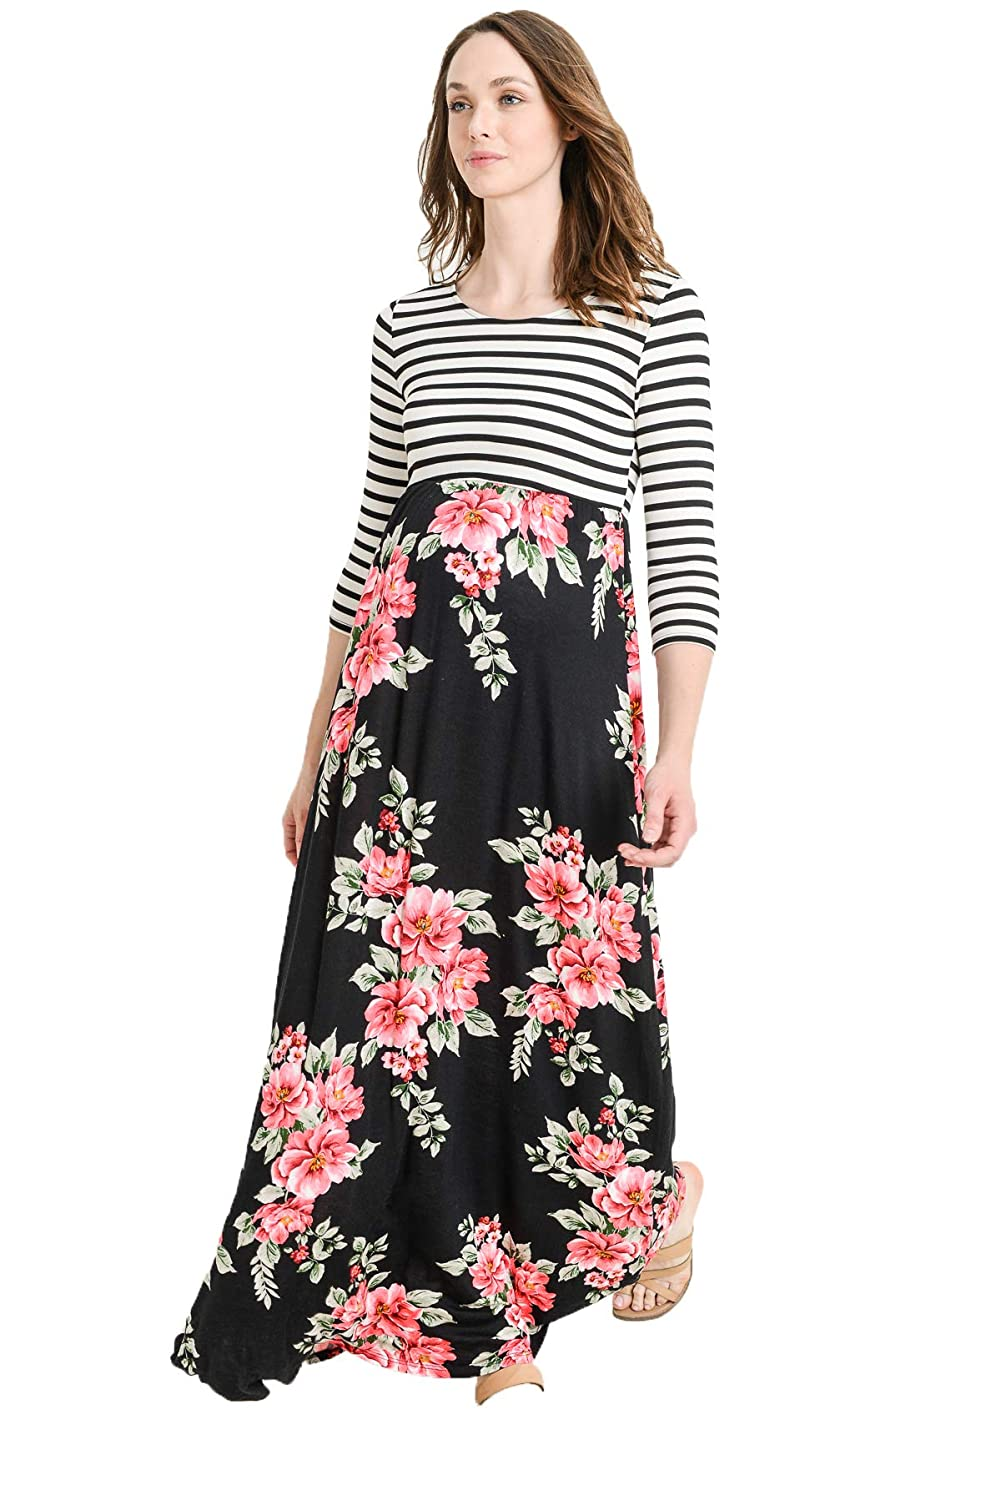 Hello MIZ DRESS レディース B07GC7R2TJ Large|Black/Blush Flower Black/Blush Flower Large